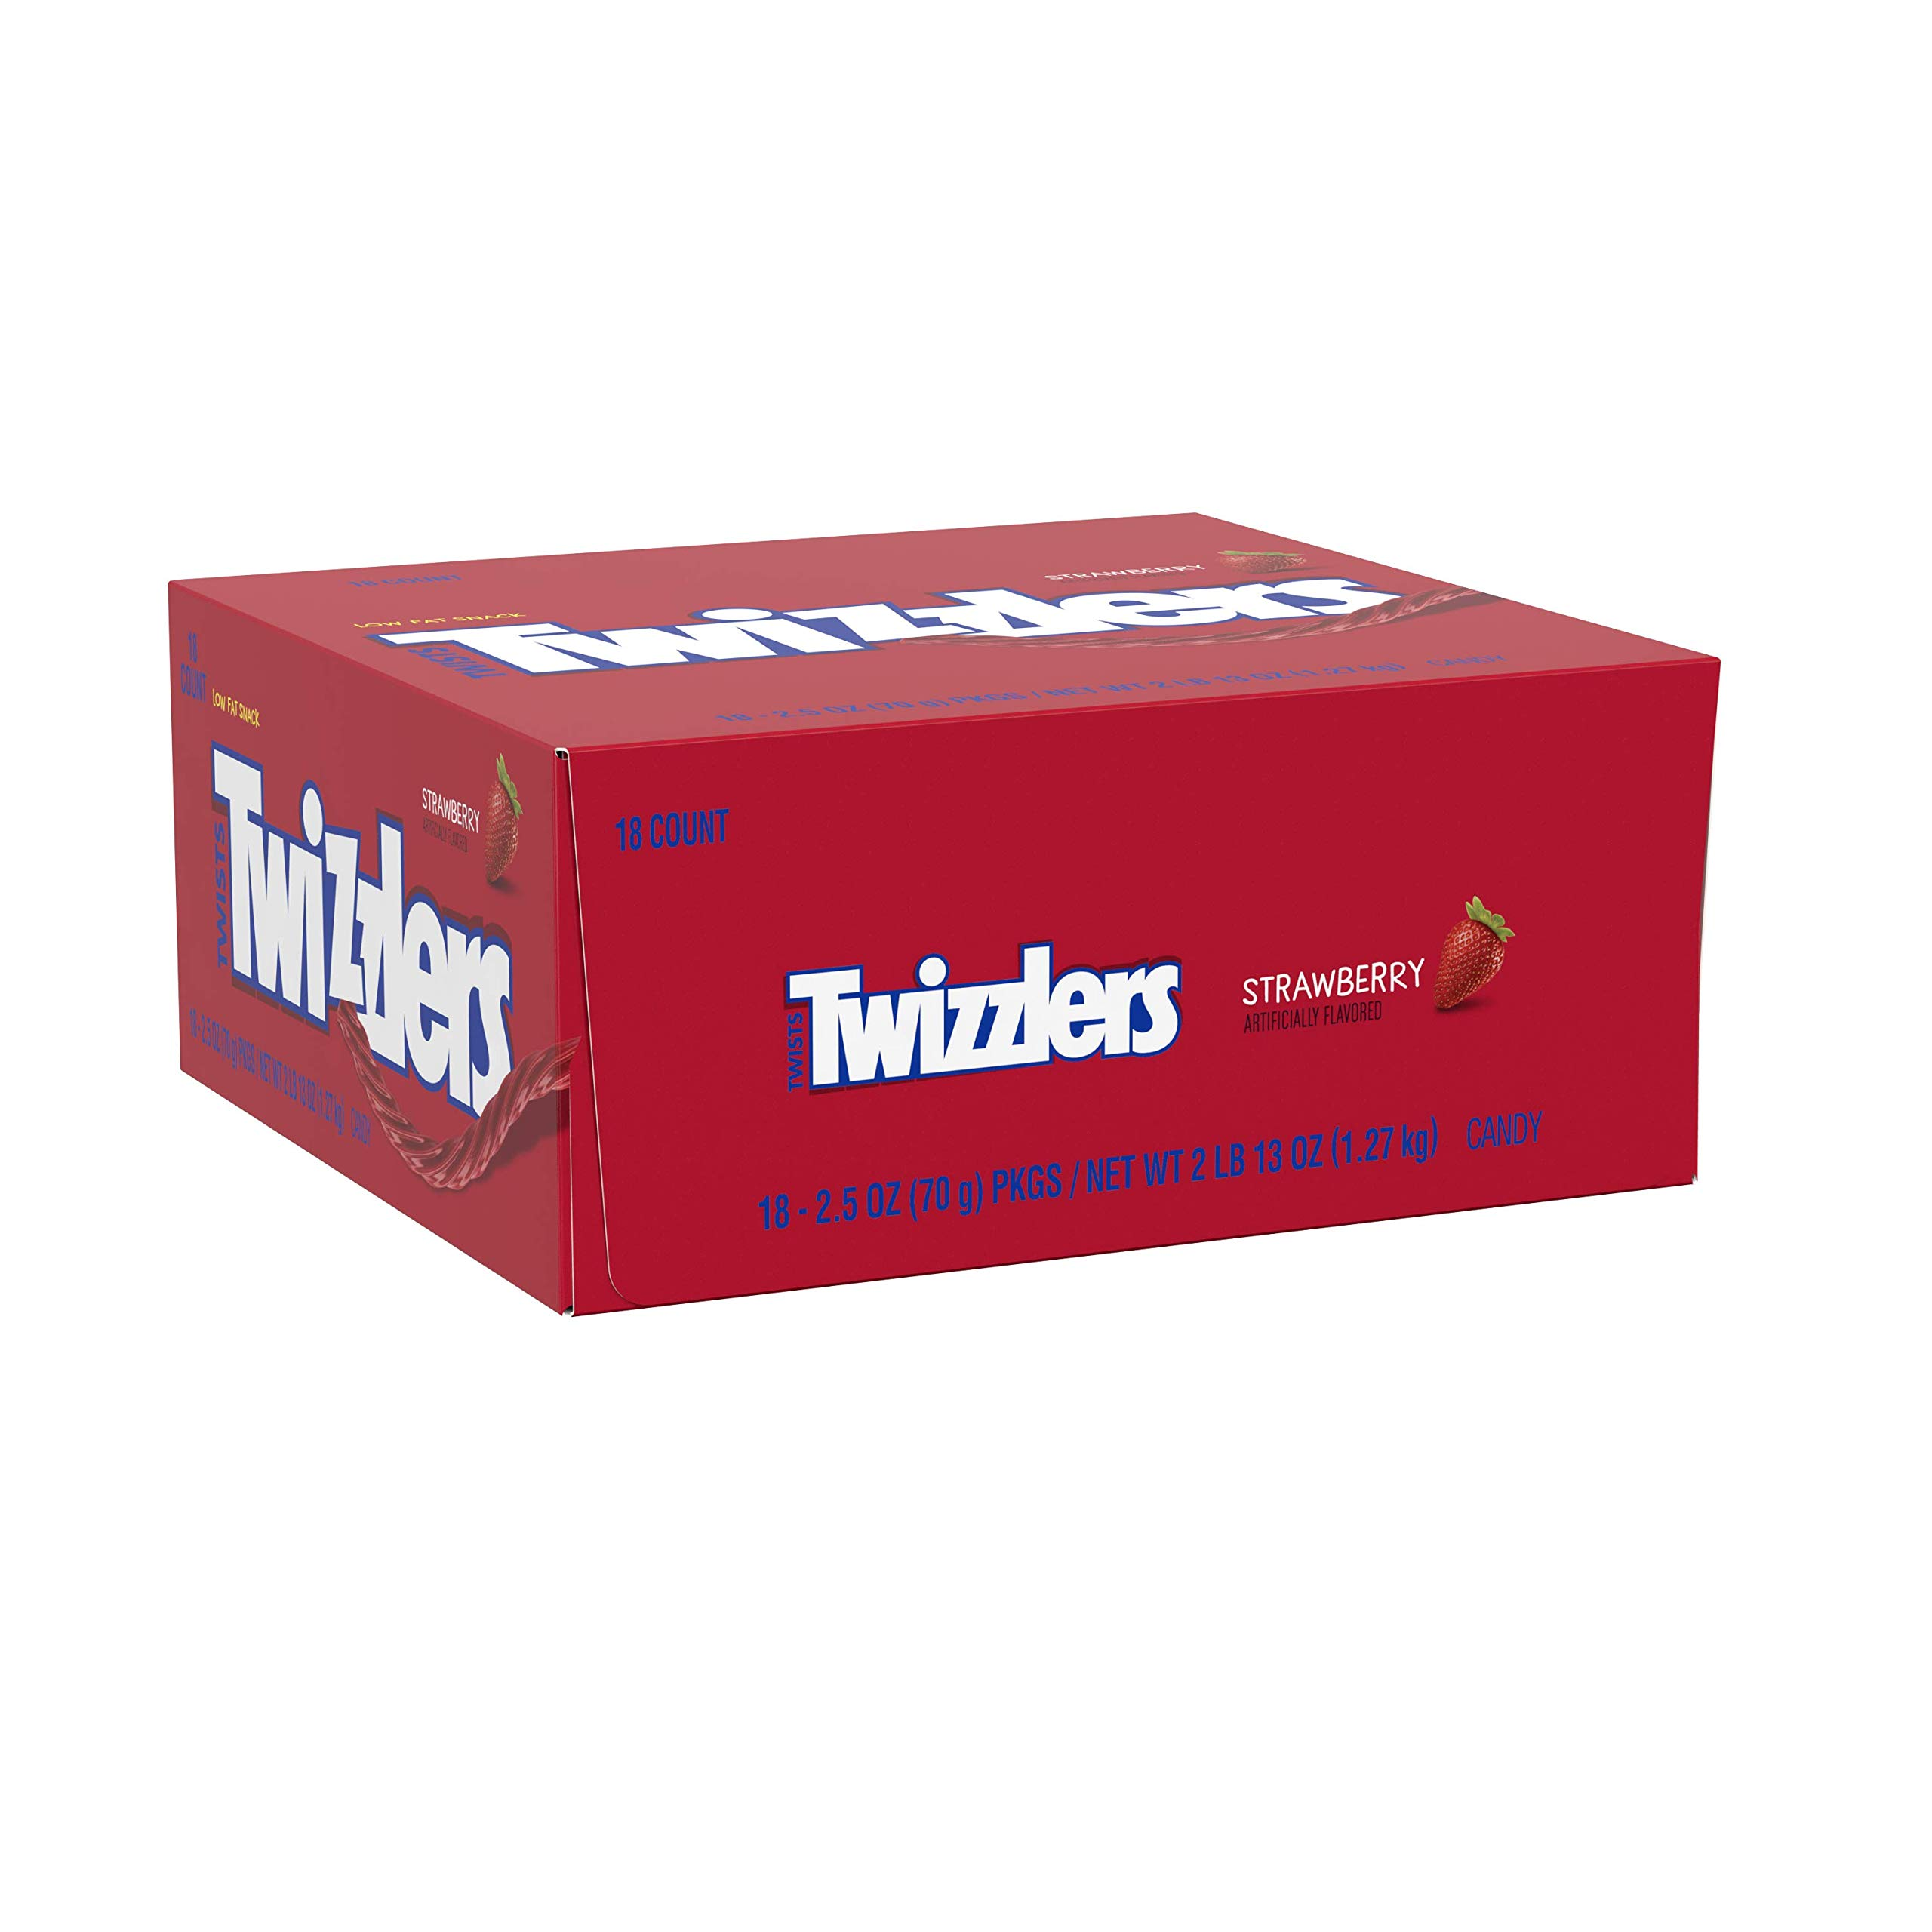 TWIZZLERS Twists Strawberry Flavored Chewy Candy, Easter, 2.5 oz Bags (18 Count)